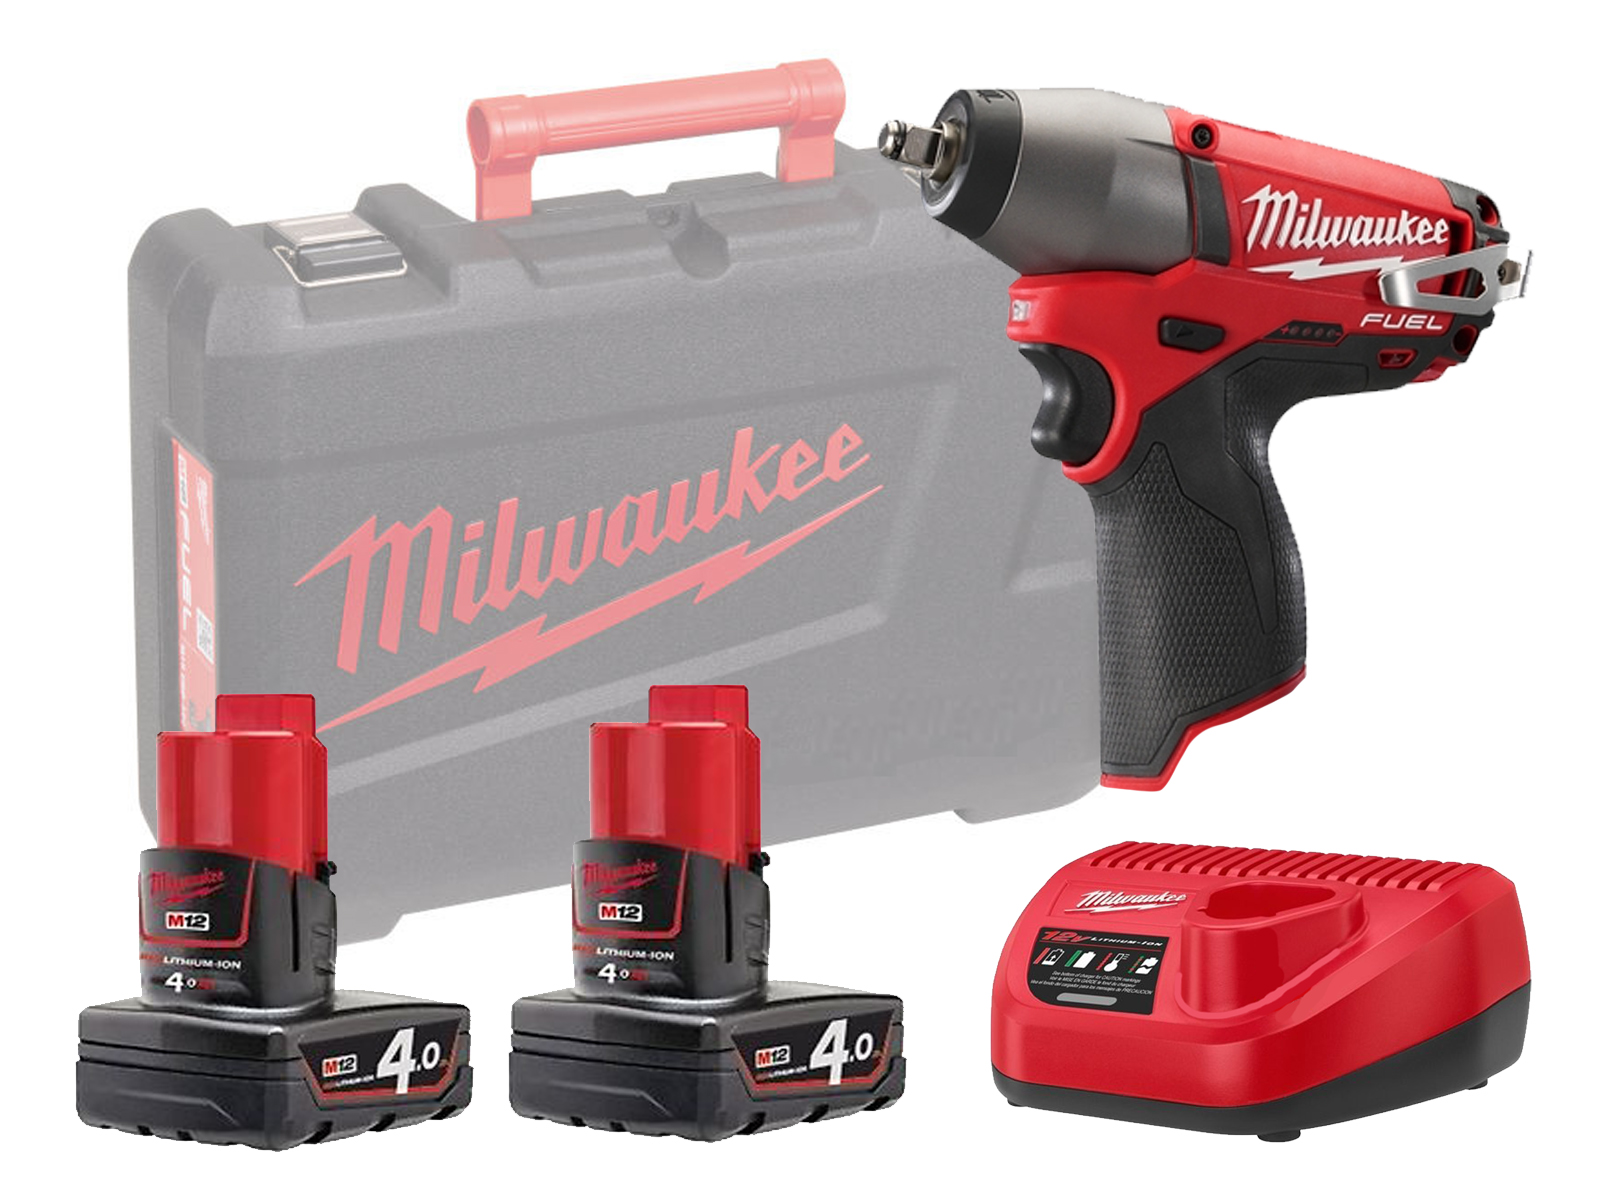 """MILWAUKEE 12V FUEL IMPACT WRENCH 1/2"""" - M12CIW12 - 4.0AH PACK"""